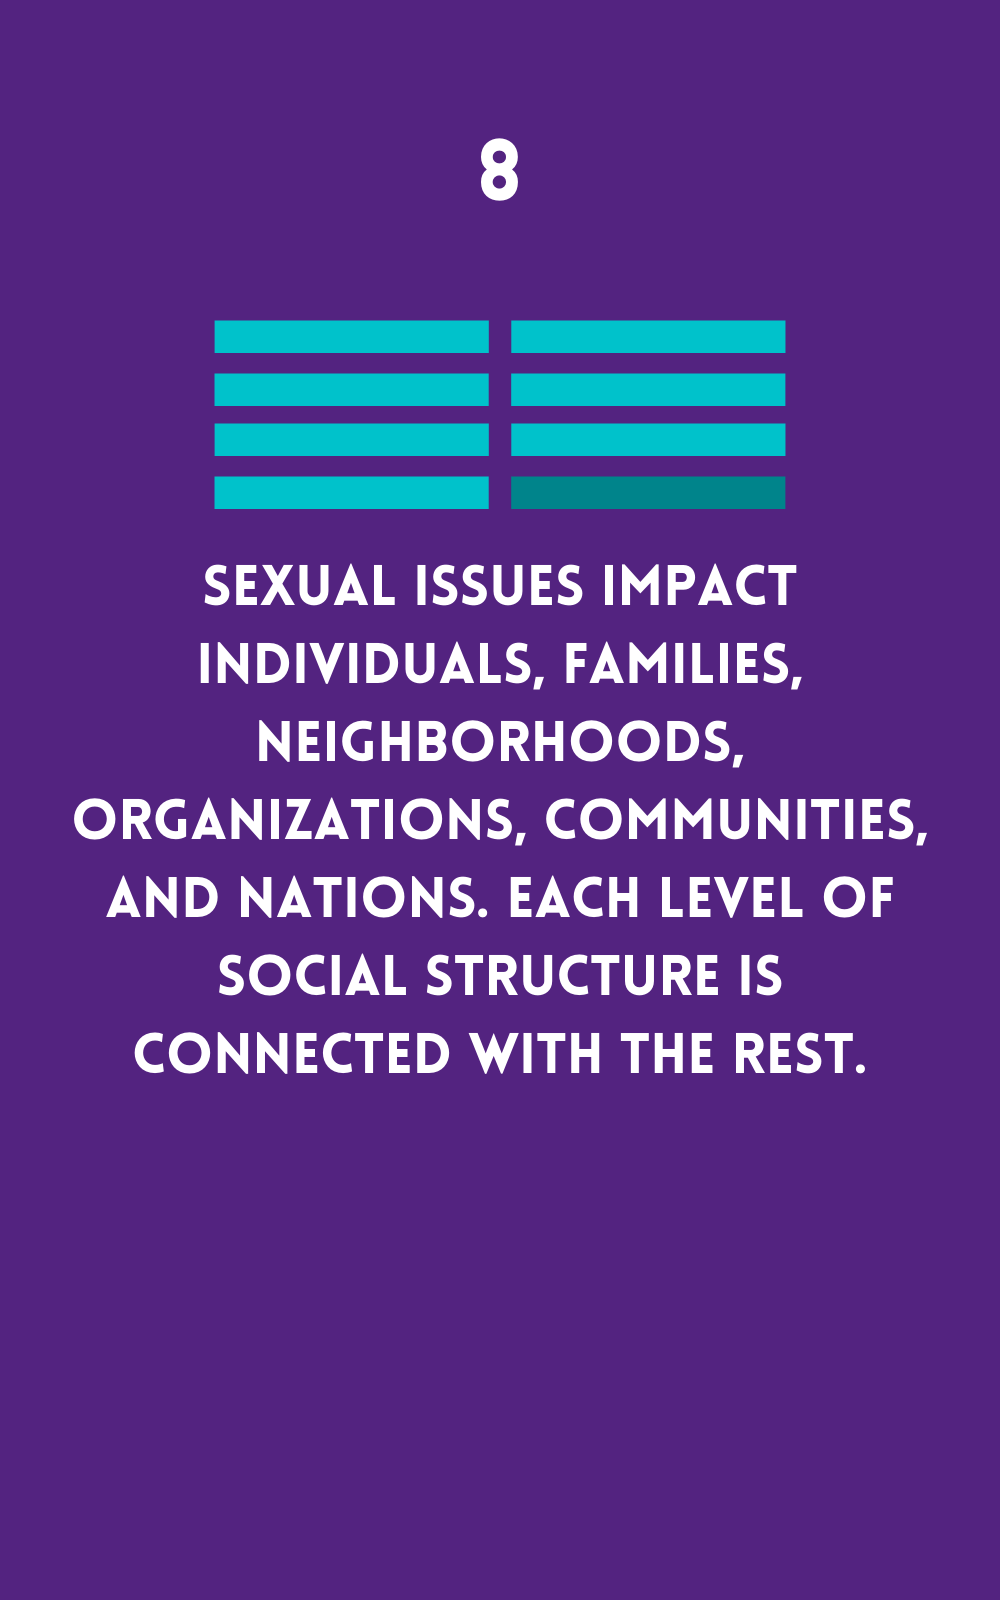 Sexual issues impact individuals, families, communities, and nations